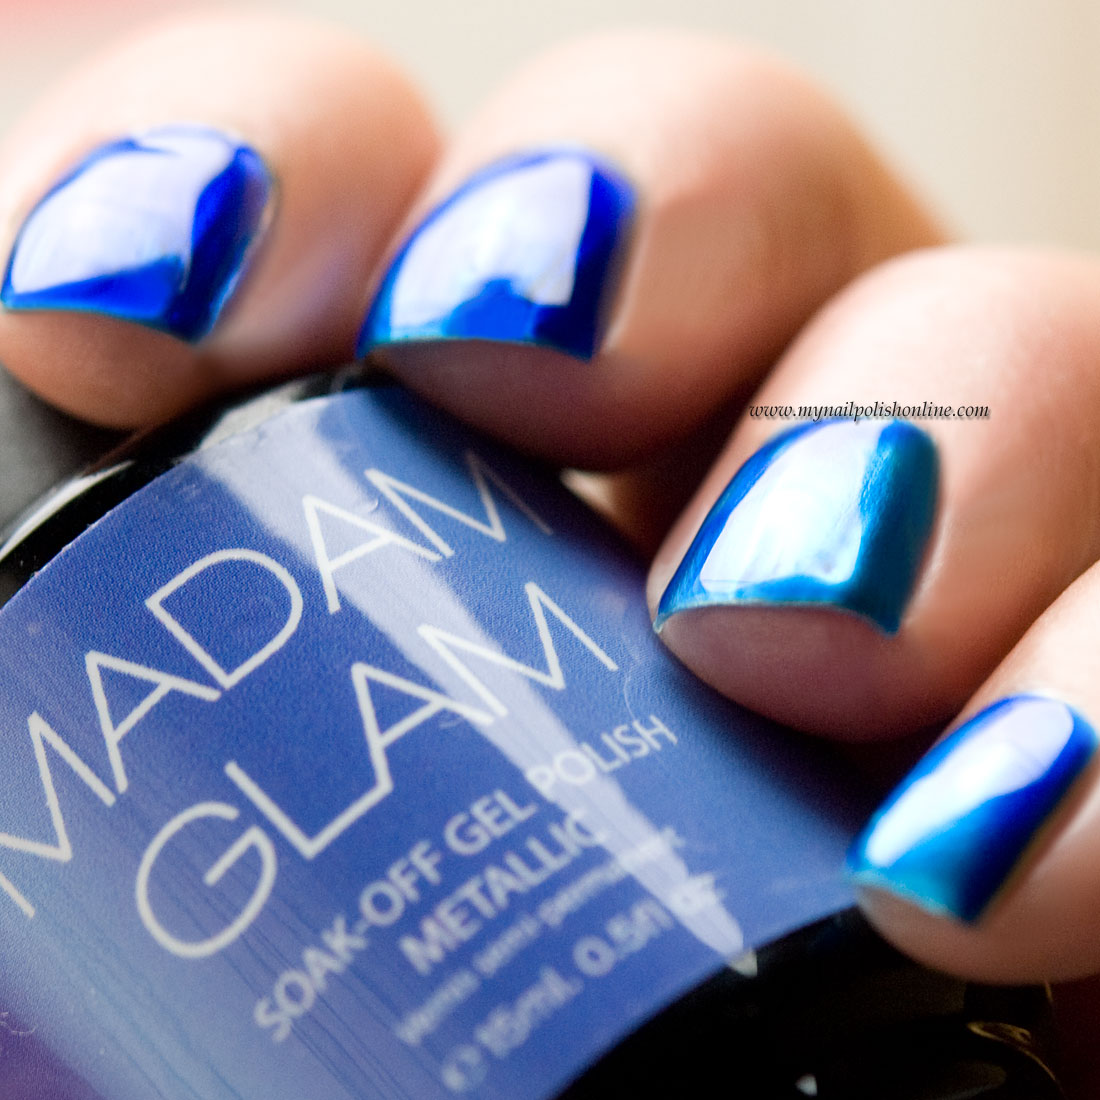 Madam Glam – Metallic Gels Collection